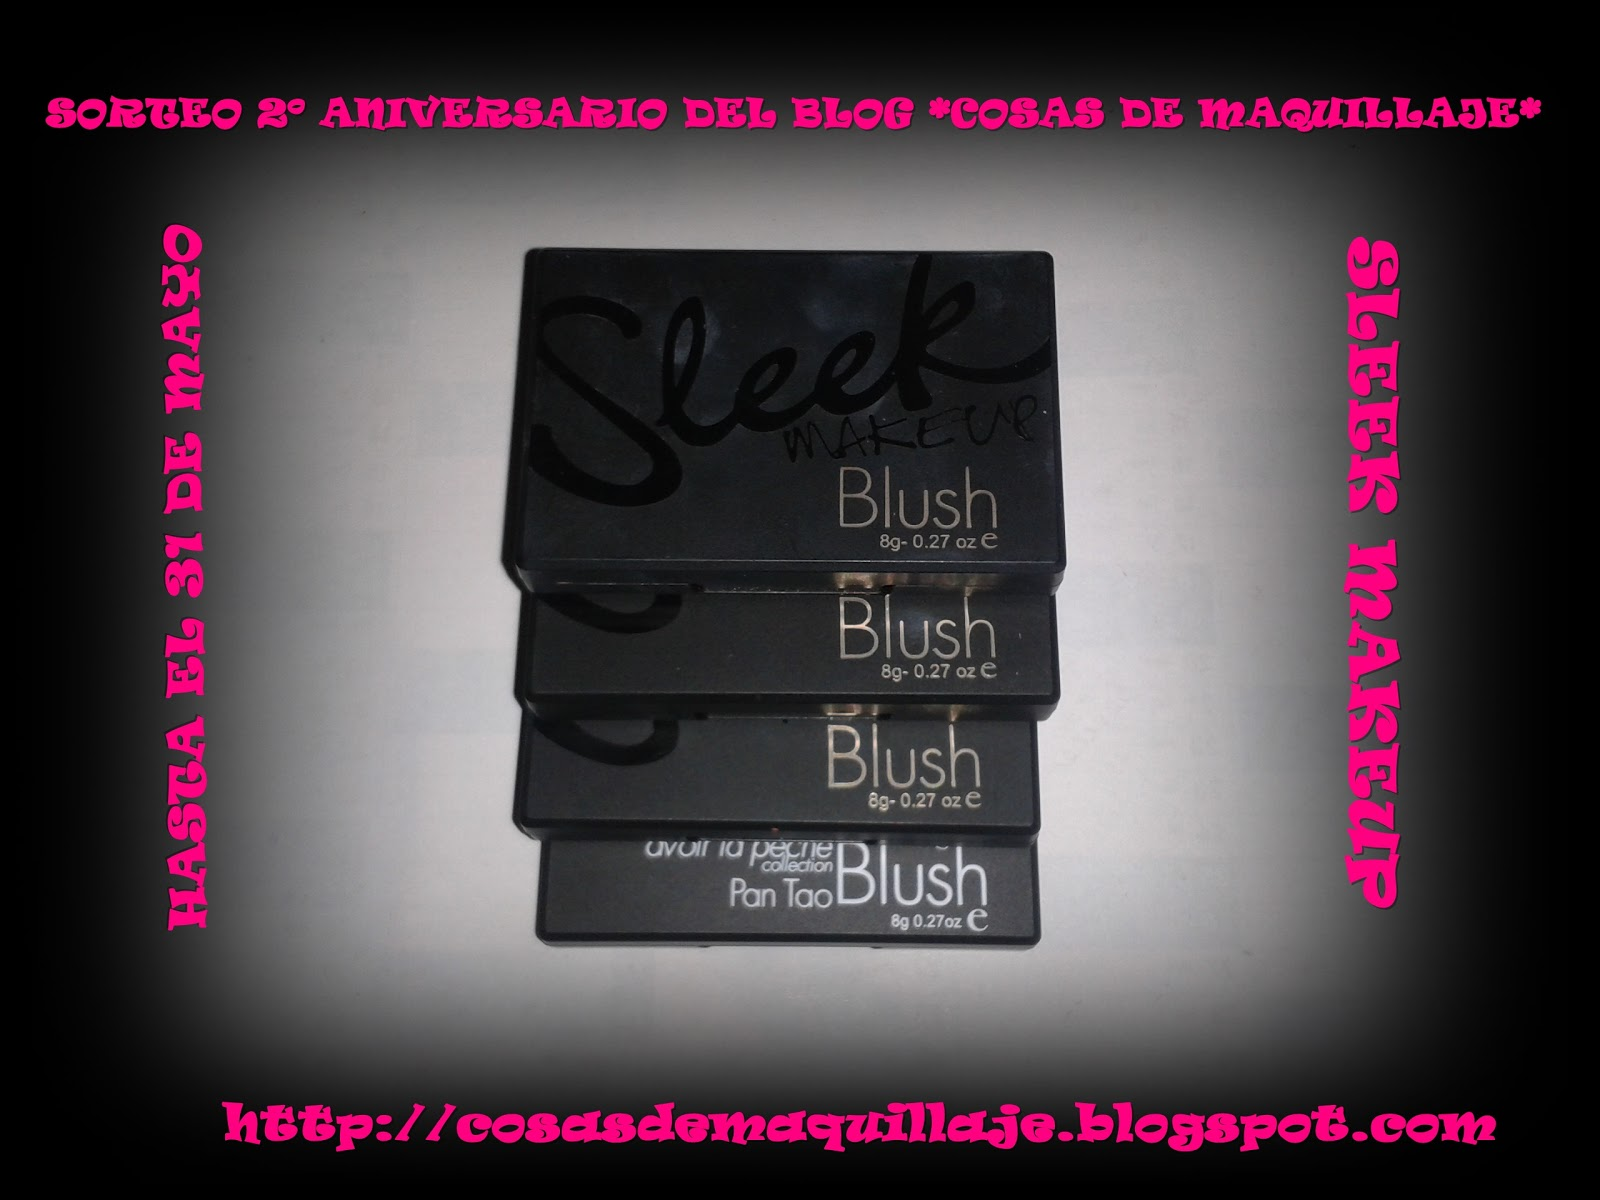 Sorteo 2 Aniversario